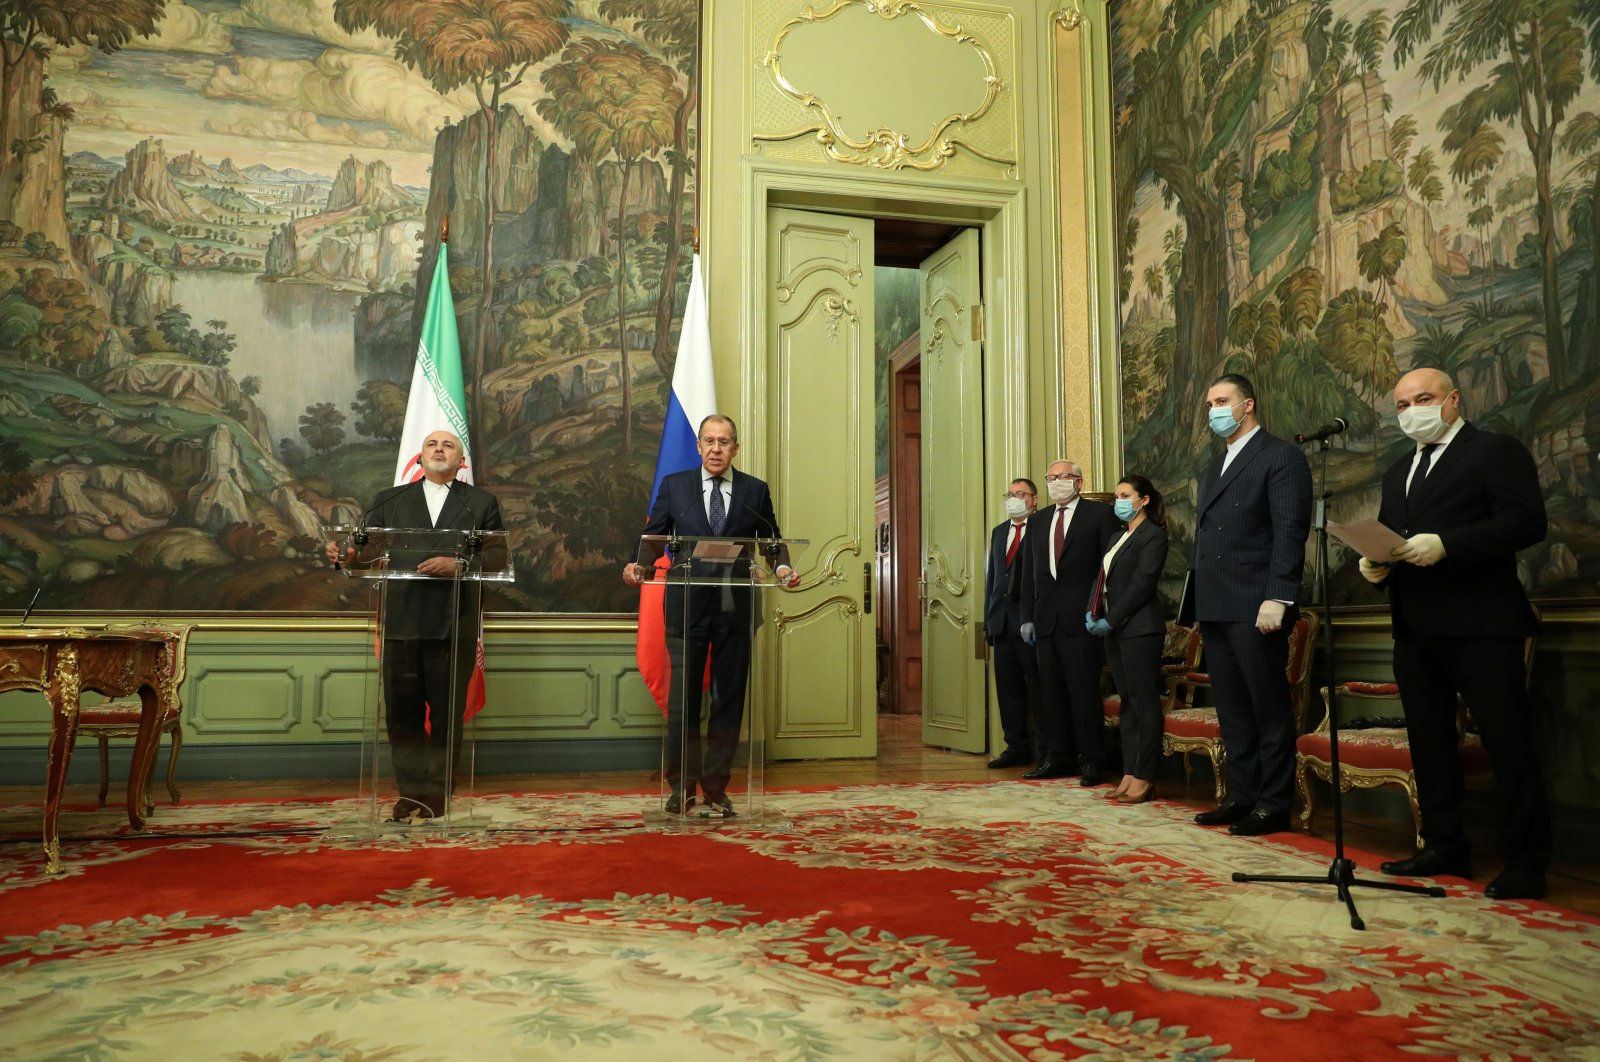 Iran's Foreign Minister Mohammad Javad Zarif (L) and Russia's Foreign Minister Sergei Lavrov attend a news conference following their meeting in Moscow, Russia, June 16, 2020. (Reuters Photo)